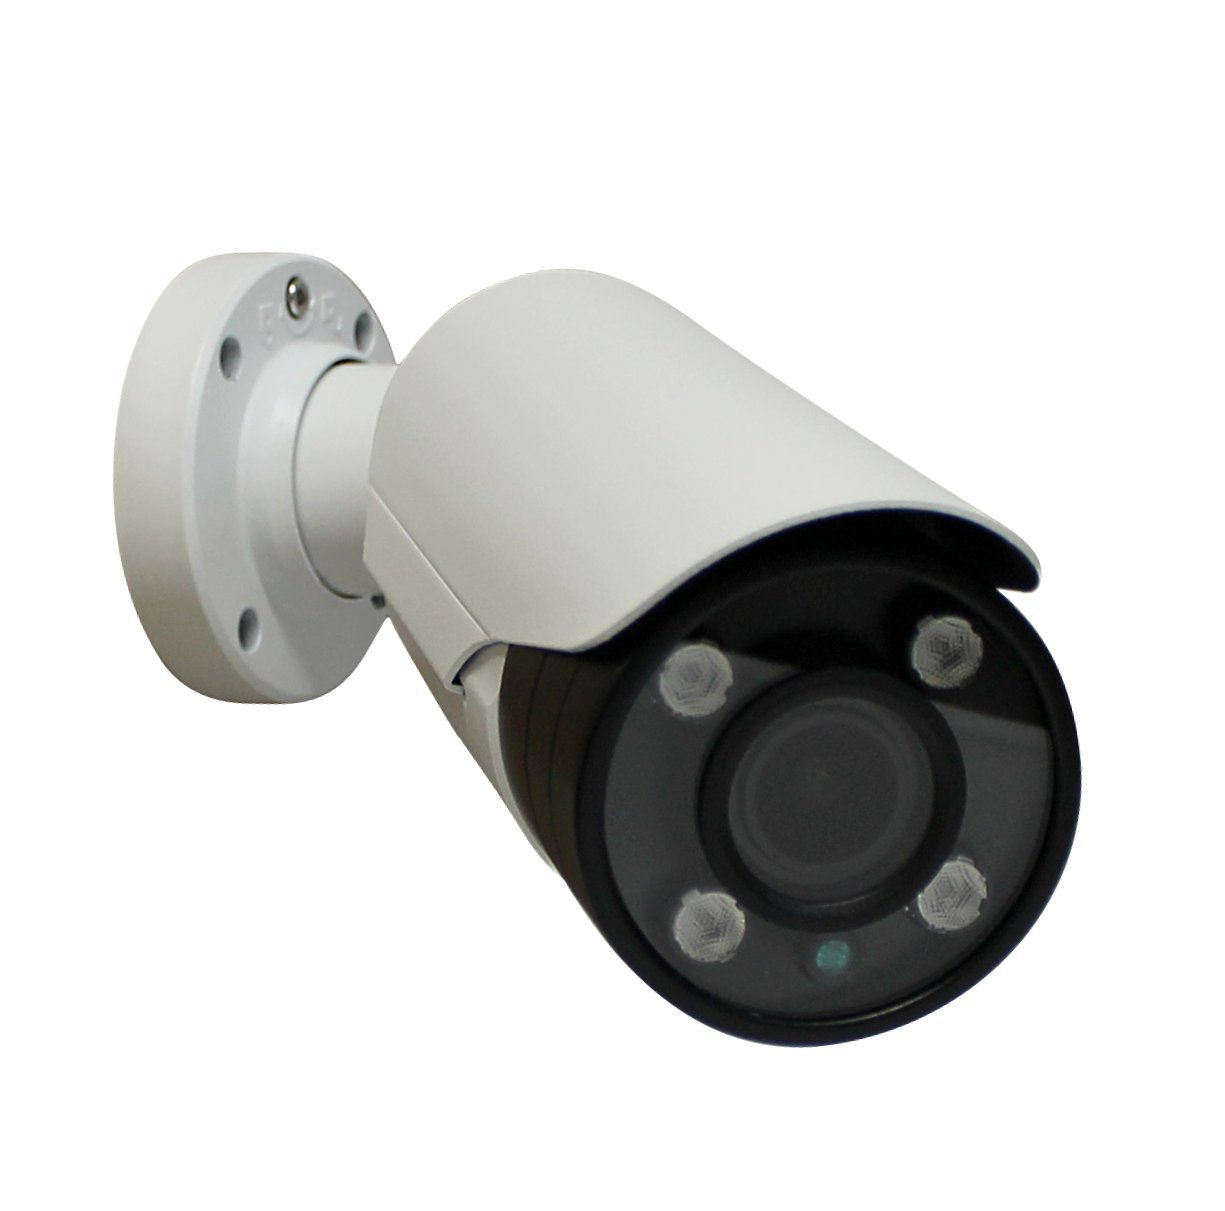 White HD TVI / CVI / AHD / 1080P 2.812mm Bullet Camera: 4 in 1 [並行輸入品] B01KBR8IG4